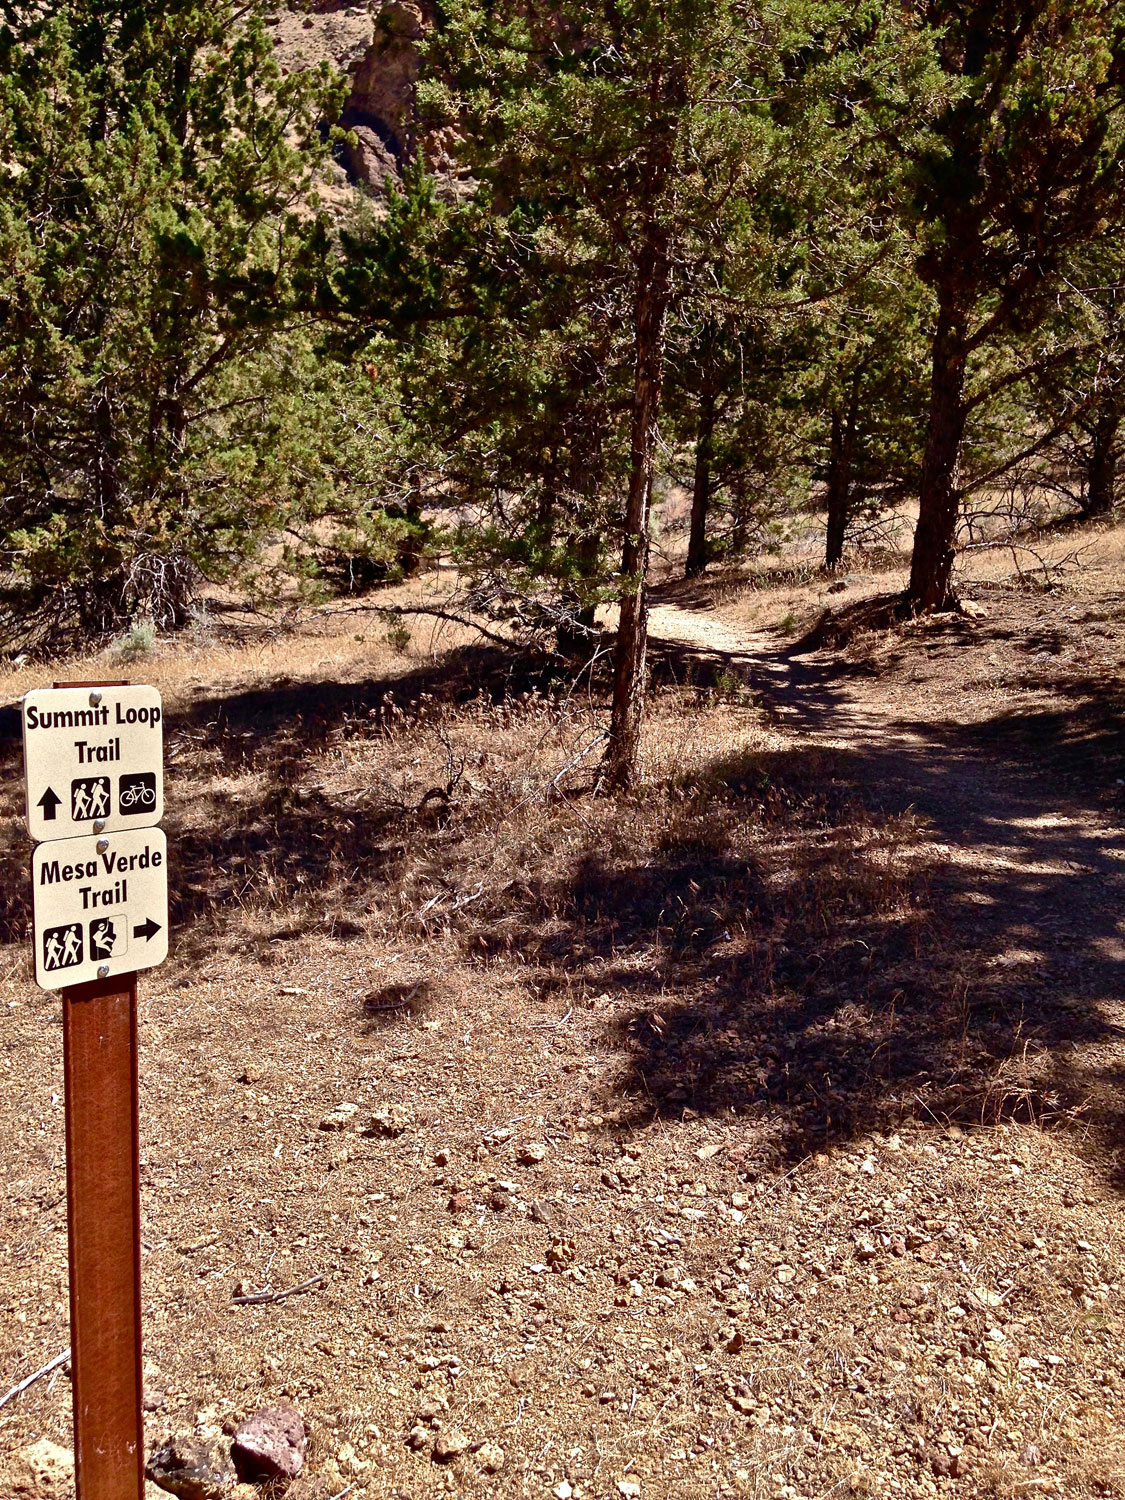 Continuing down the RIver Trail at Smith Rock State Park you come to the second junction of the Mesa Verde Trail.